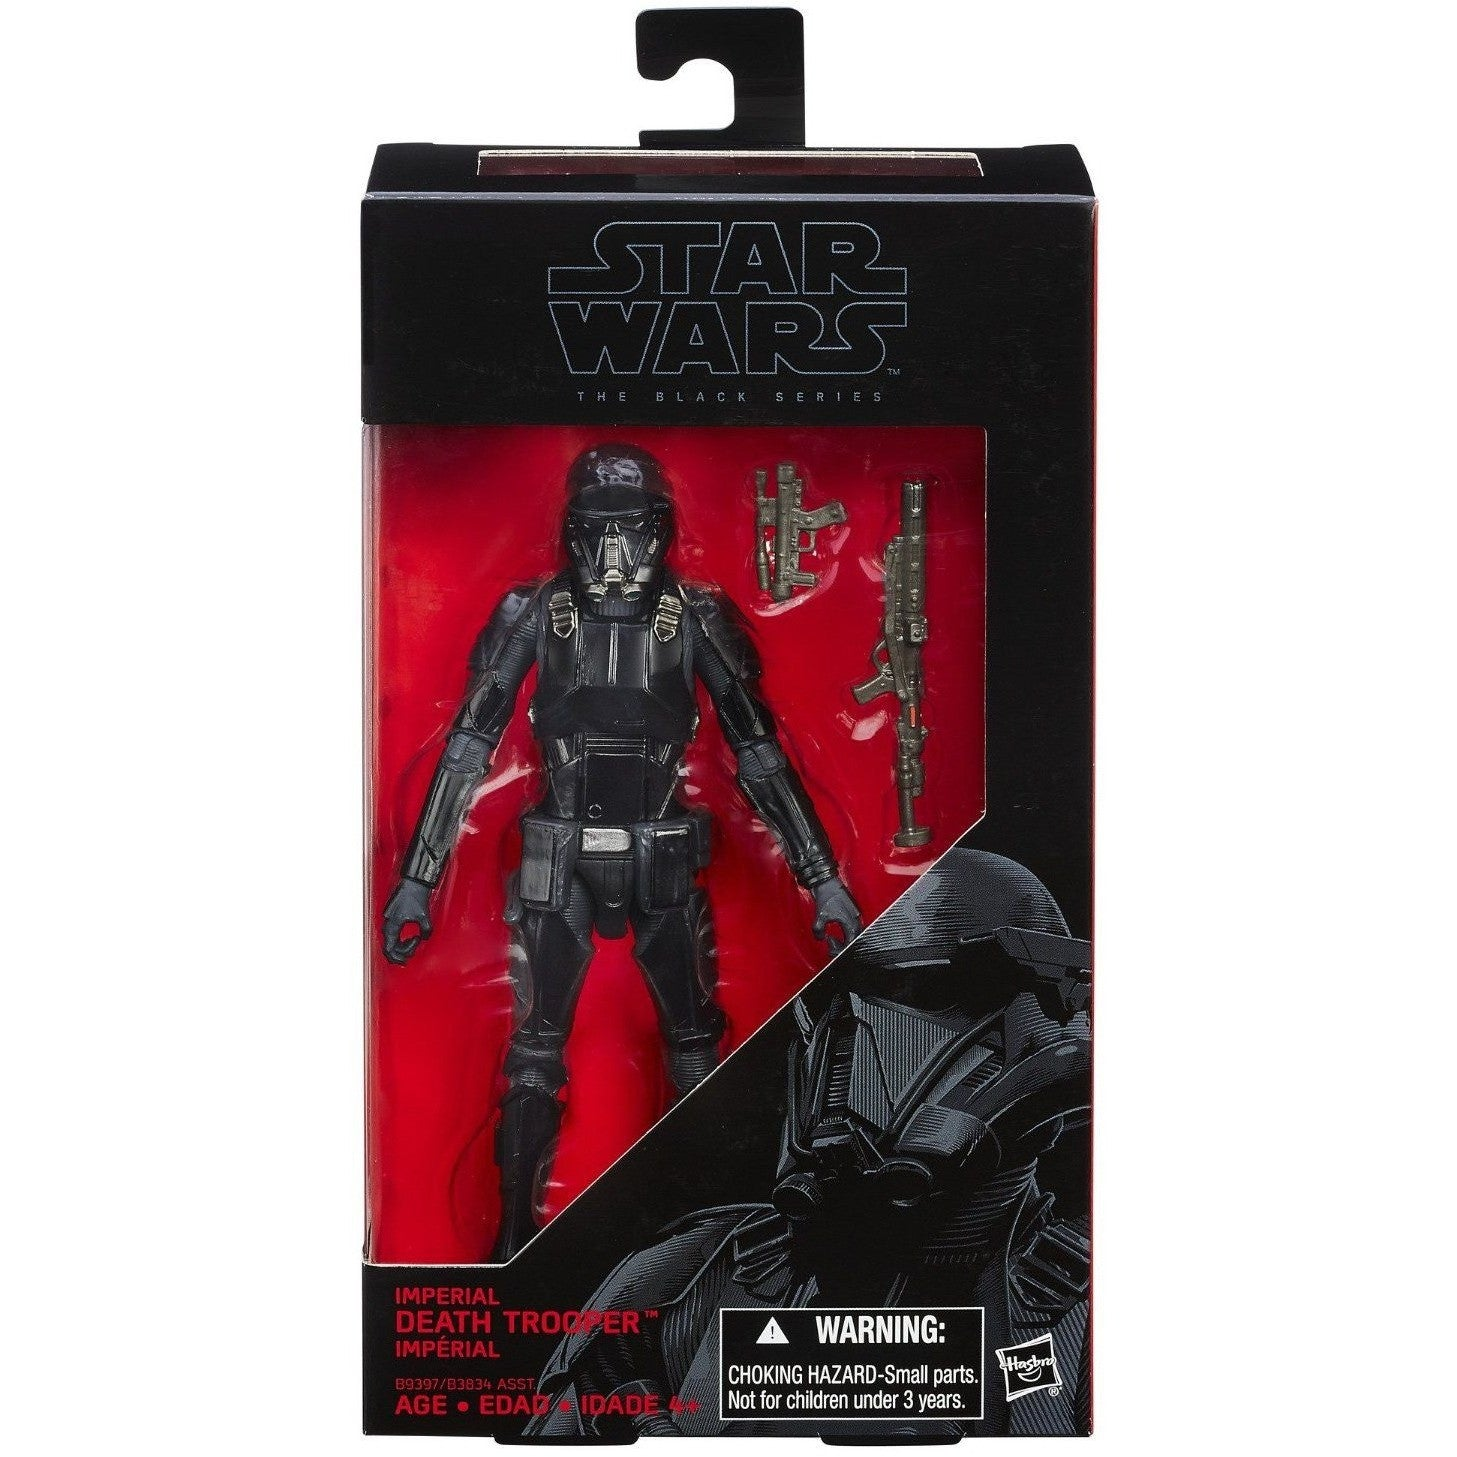 Star Wars Black Series Imperial Death Trooper Action Figure Uncanny!